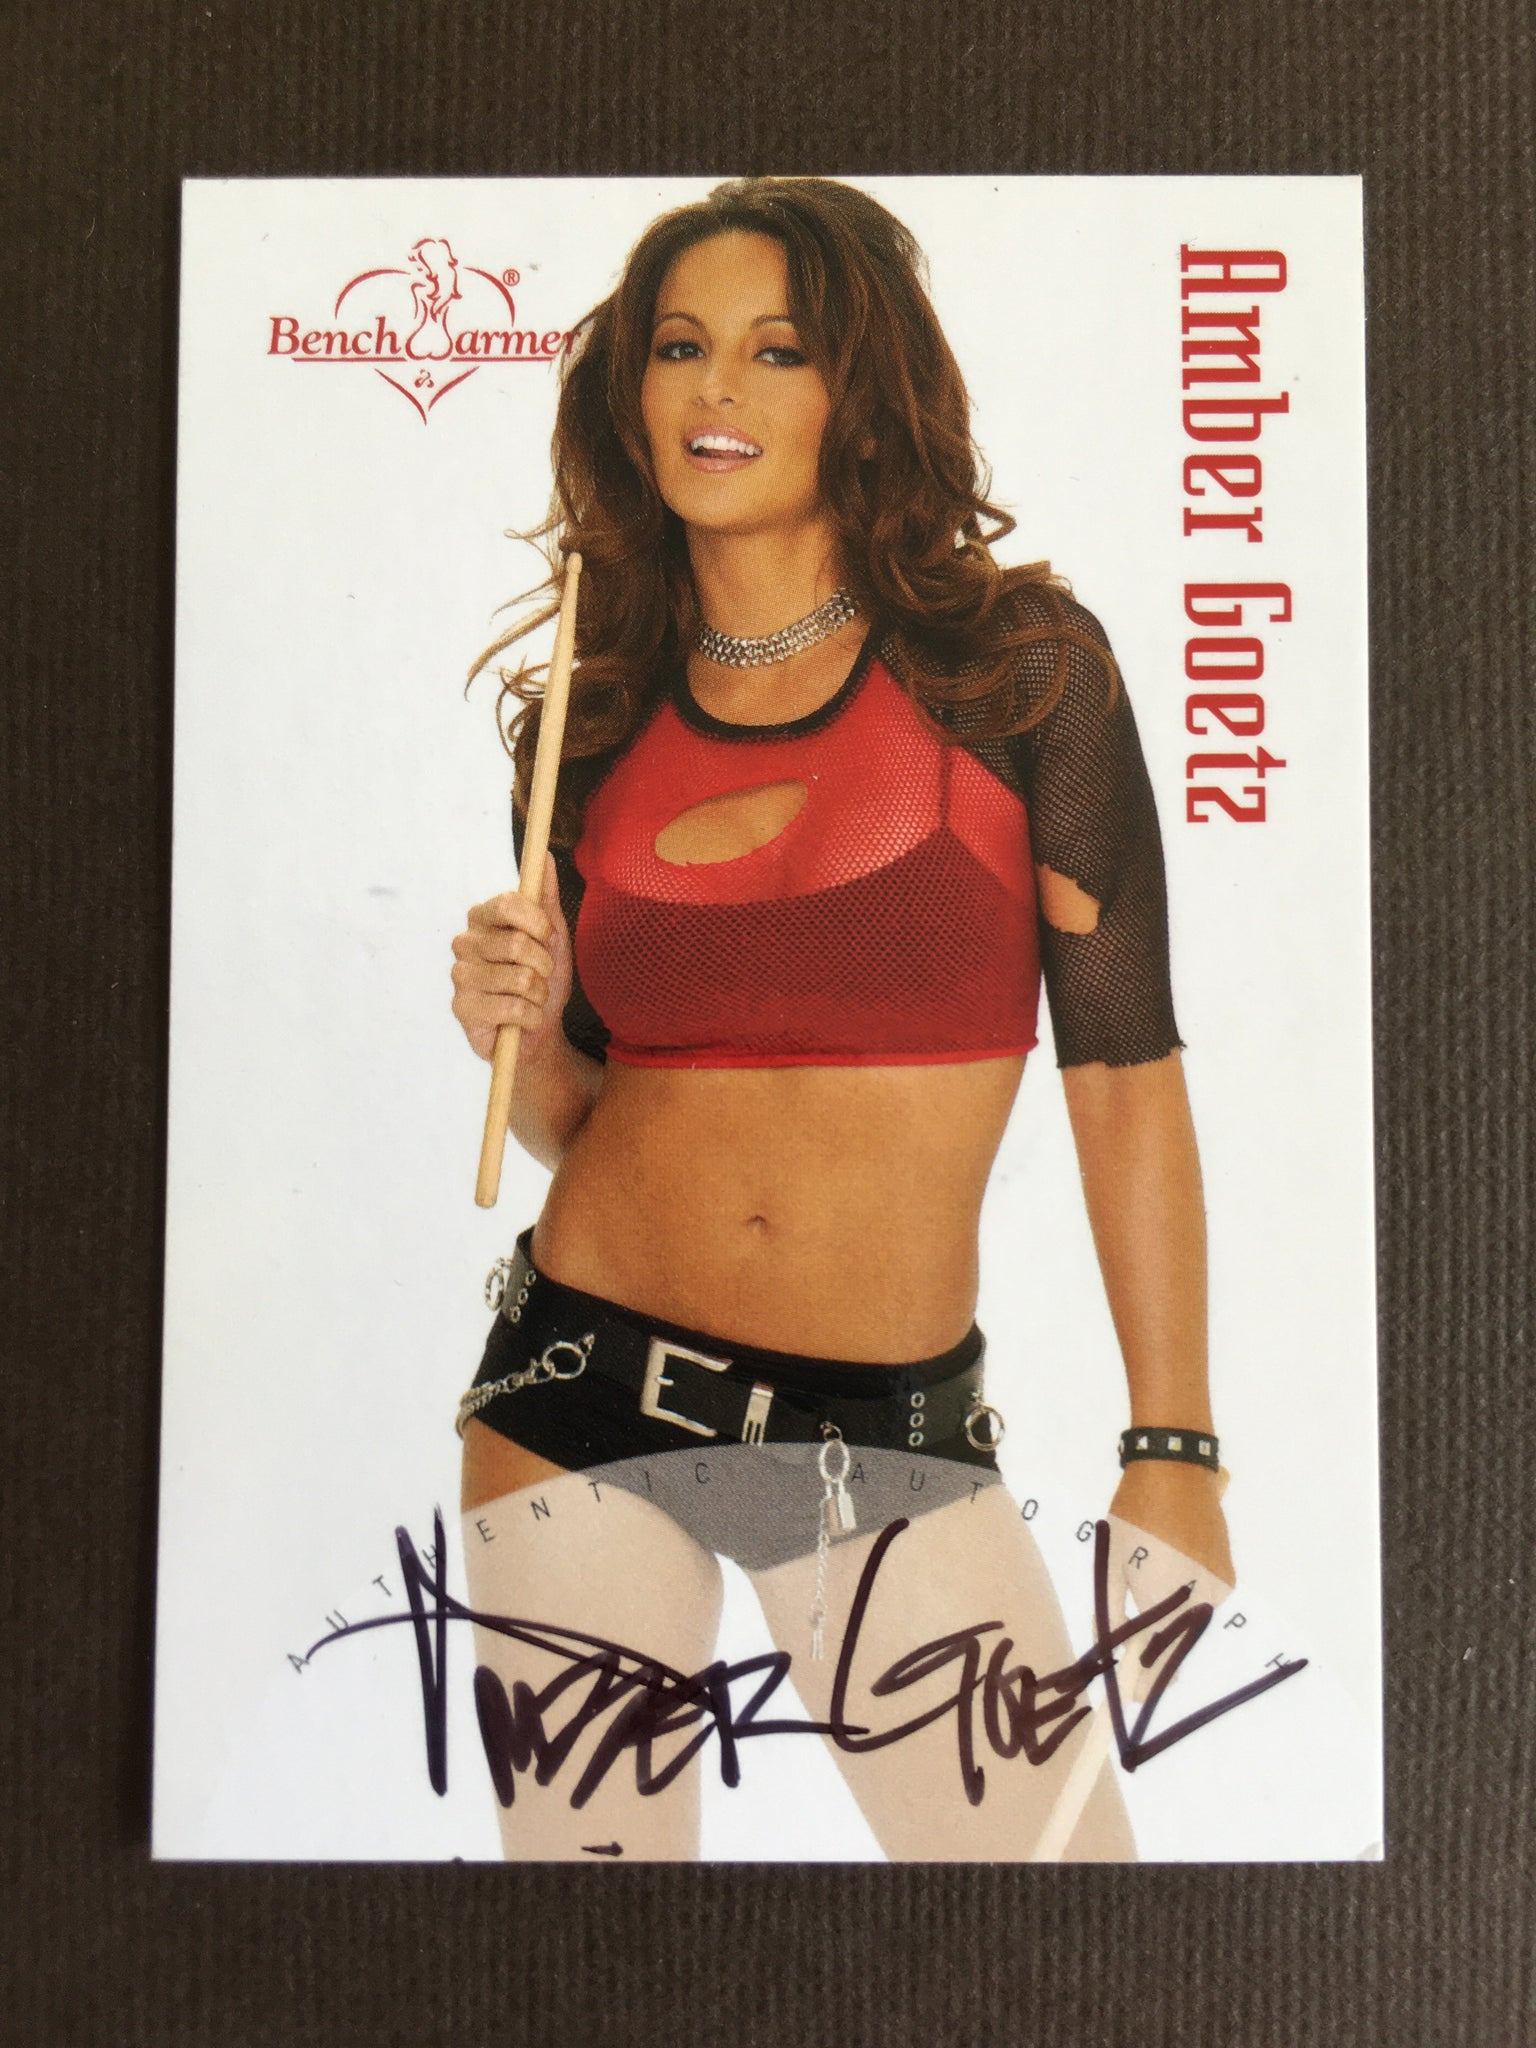 Amber Goetz - Autographed Benchwarmer Trading Card (1)